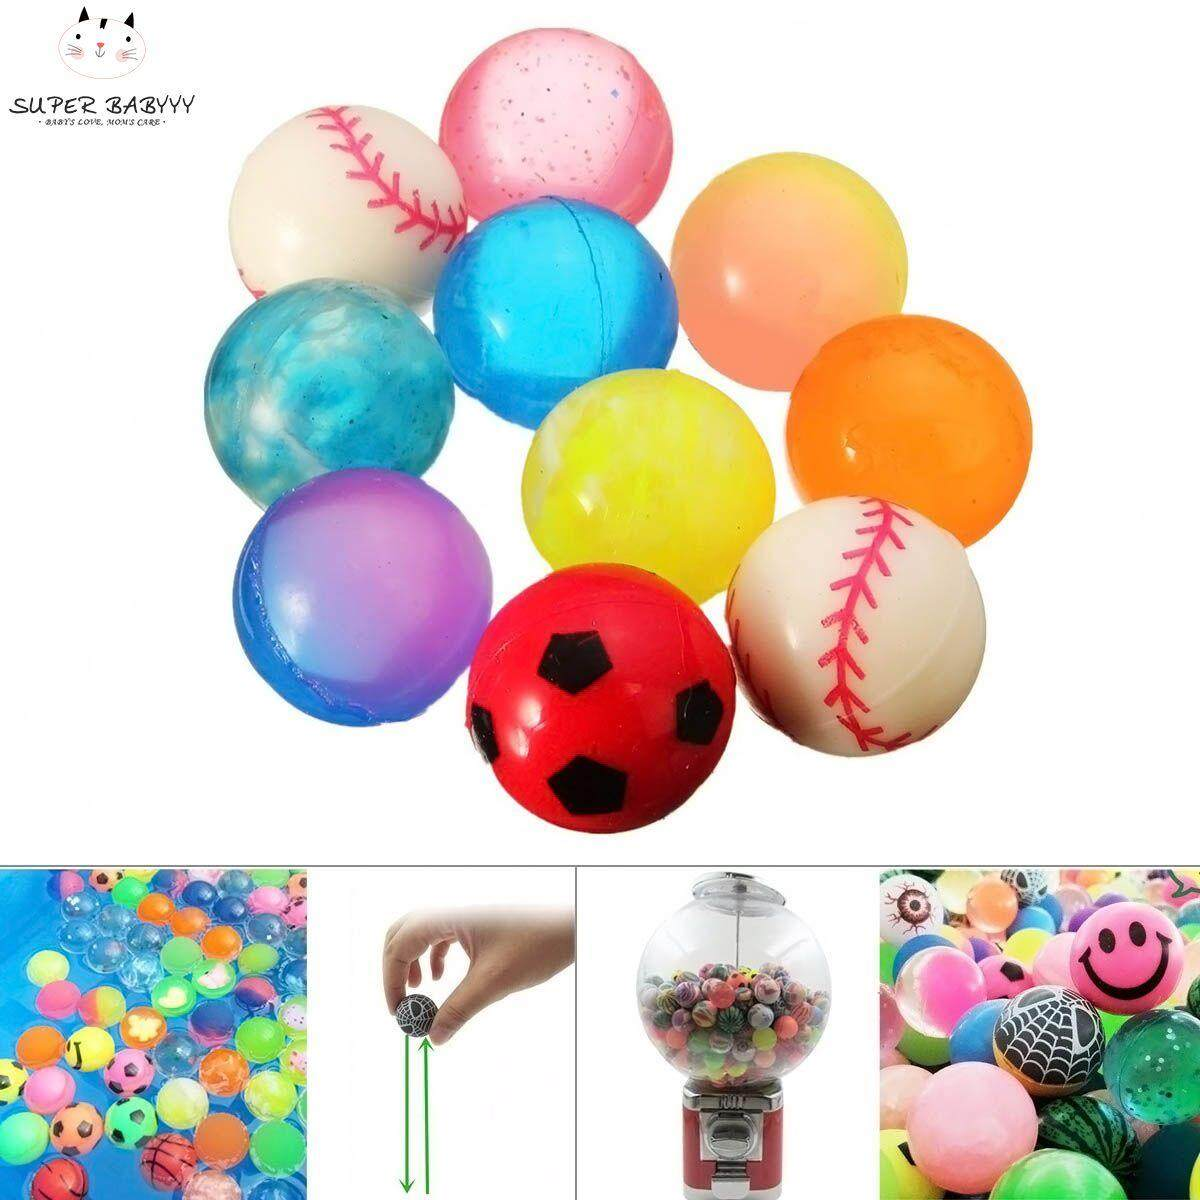 Sby 10pcs Colorful 27mm Bouncy Jet Balls Kids Toys For Pinata Loot Party Bag Stocking Fillers By Super Babyyy.